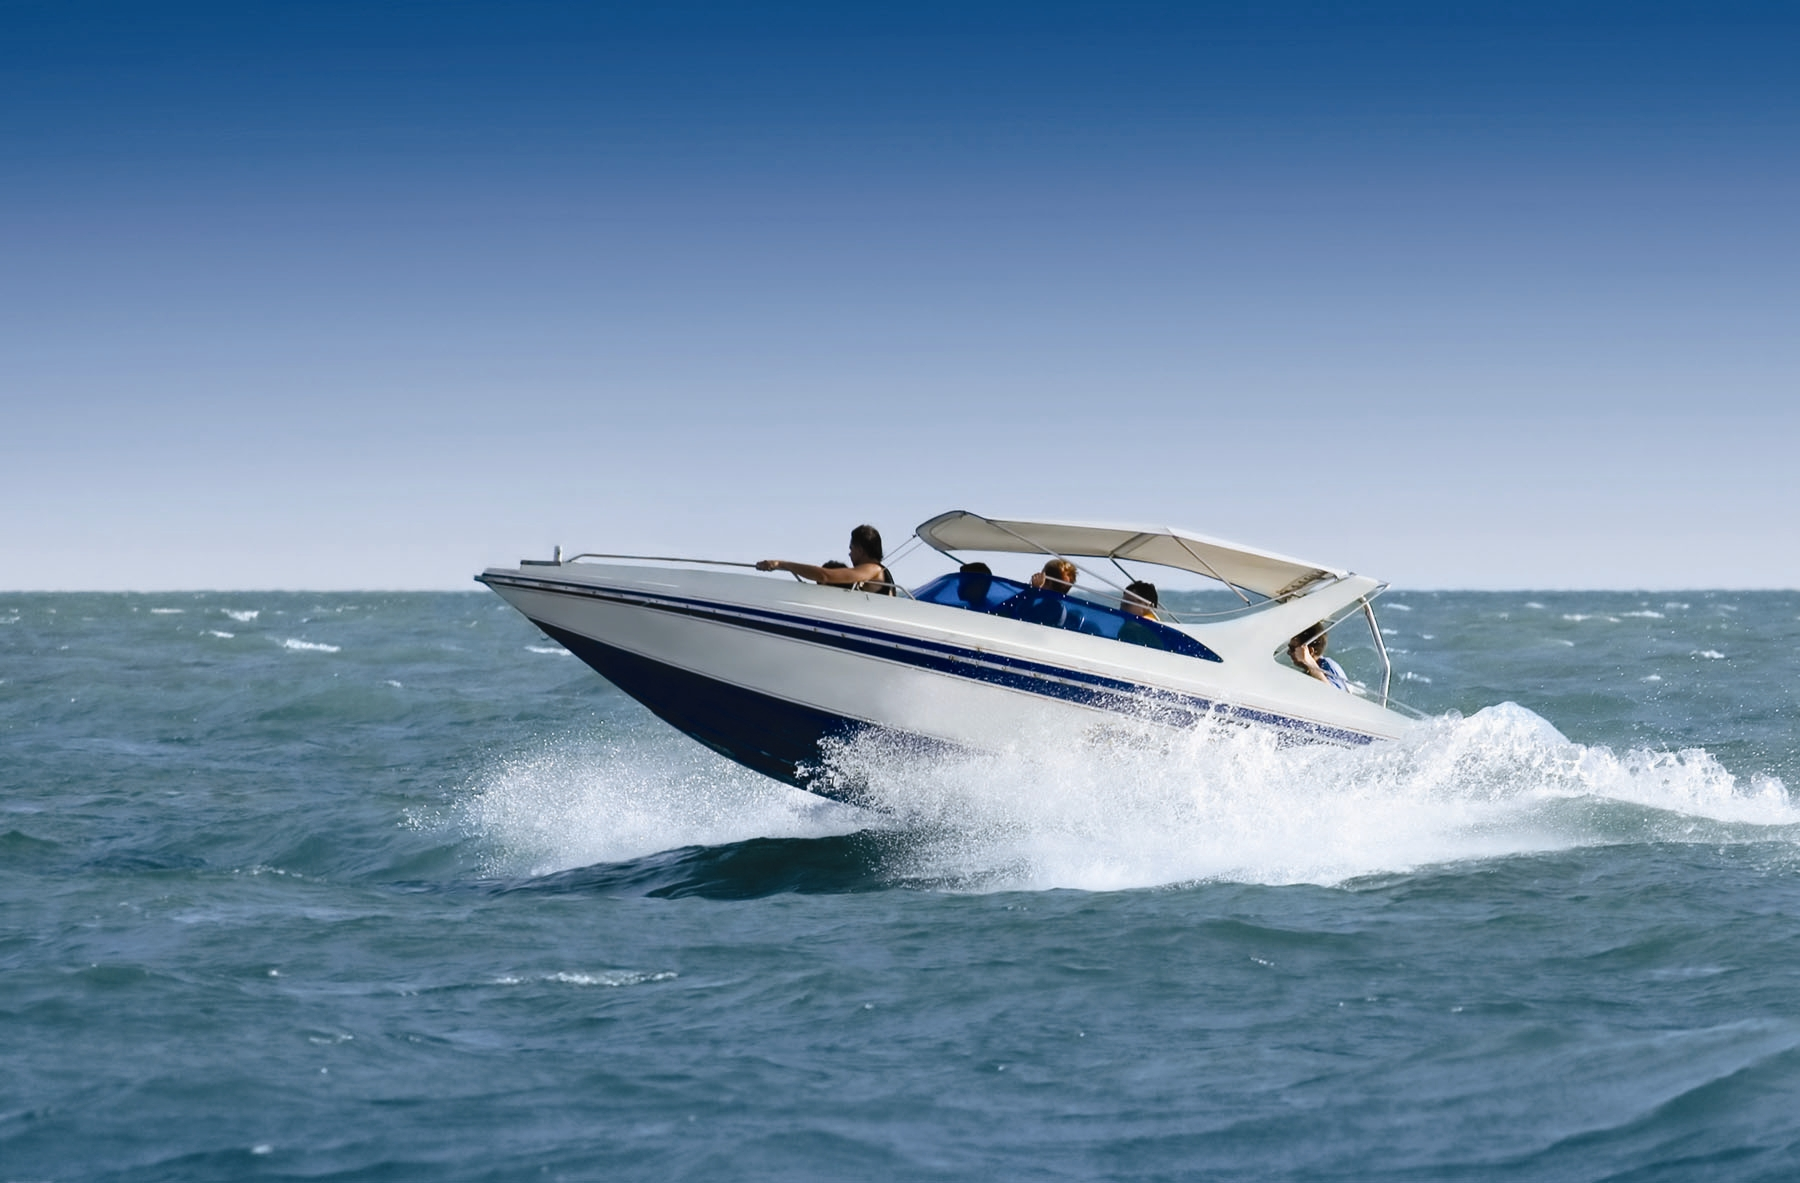 Cruising trip by speed boat full day tours in qatar